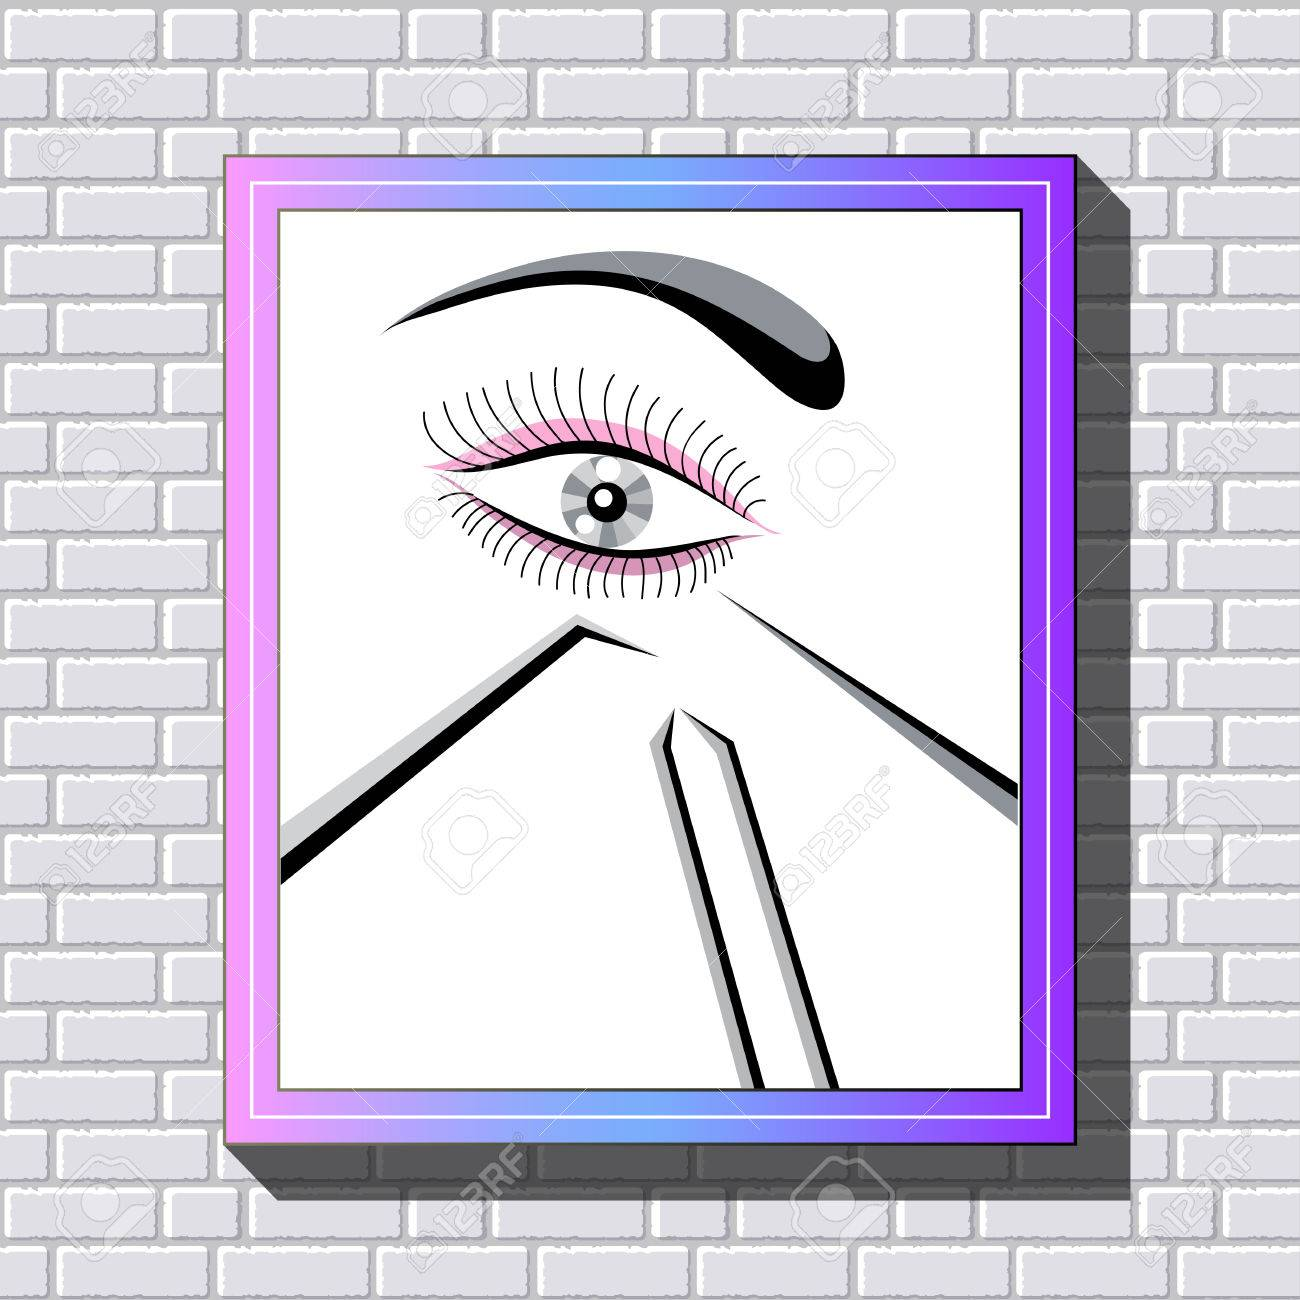 Branding for salon eyelash extension, shop cosmetic products,